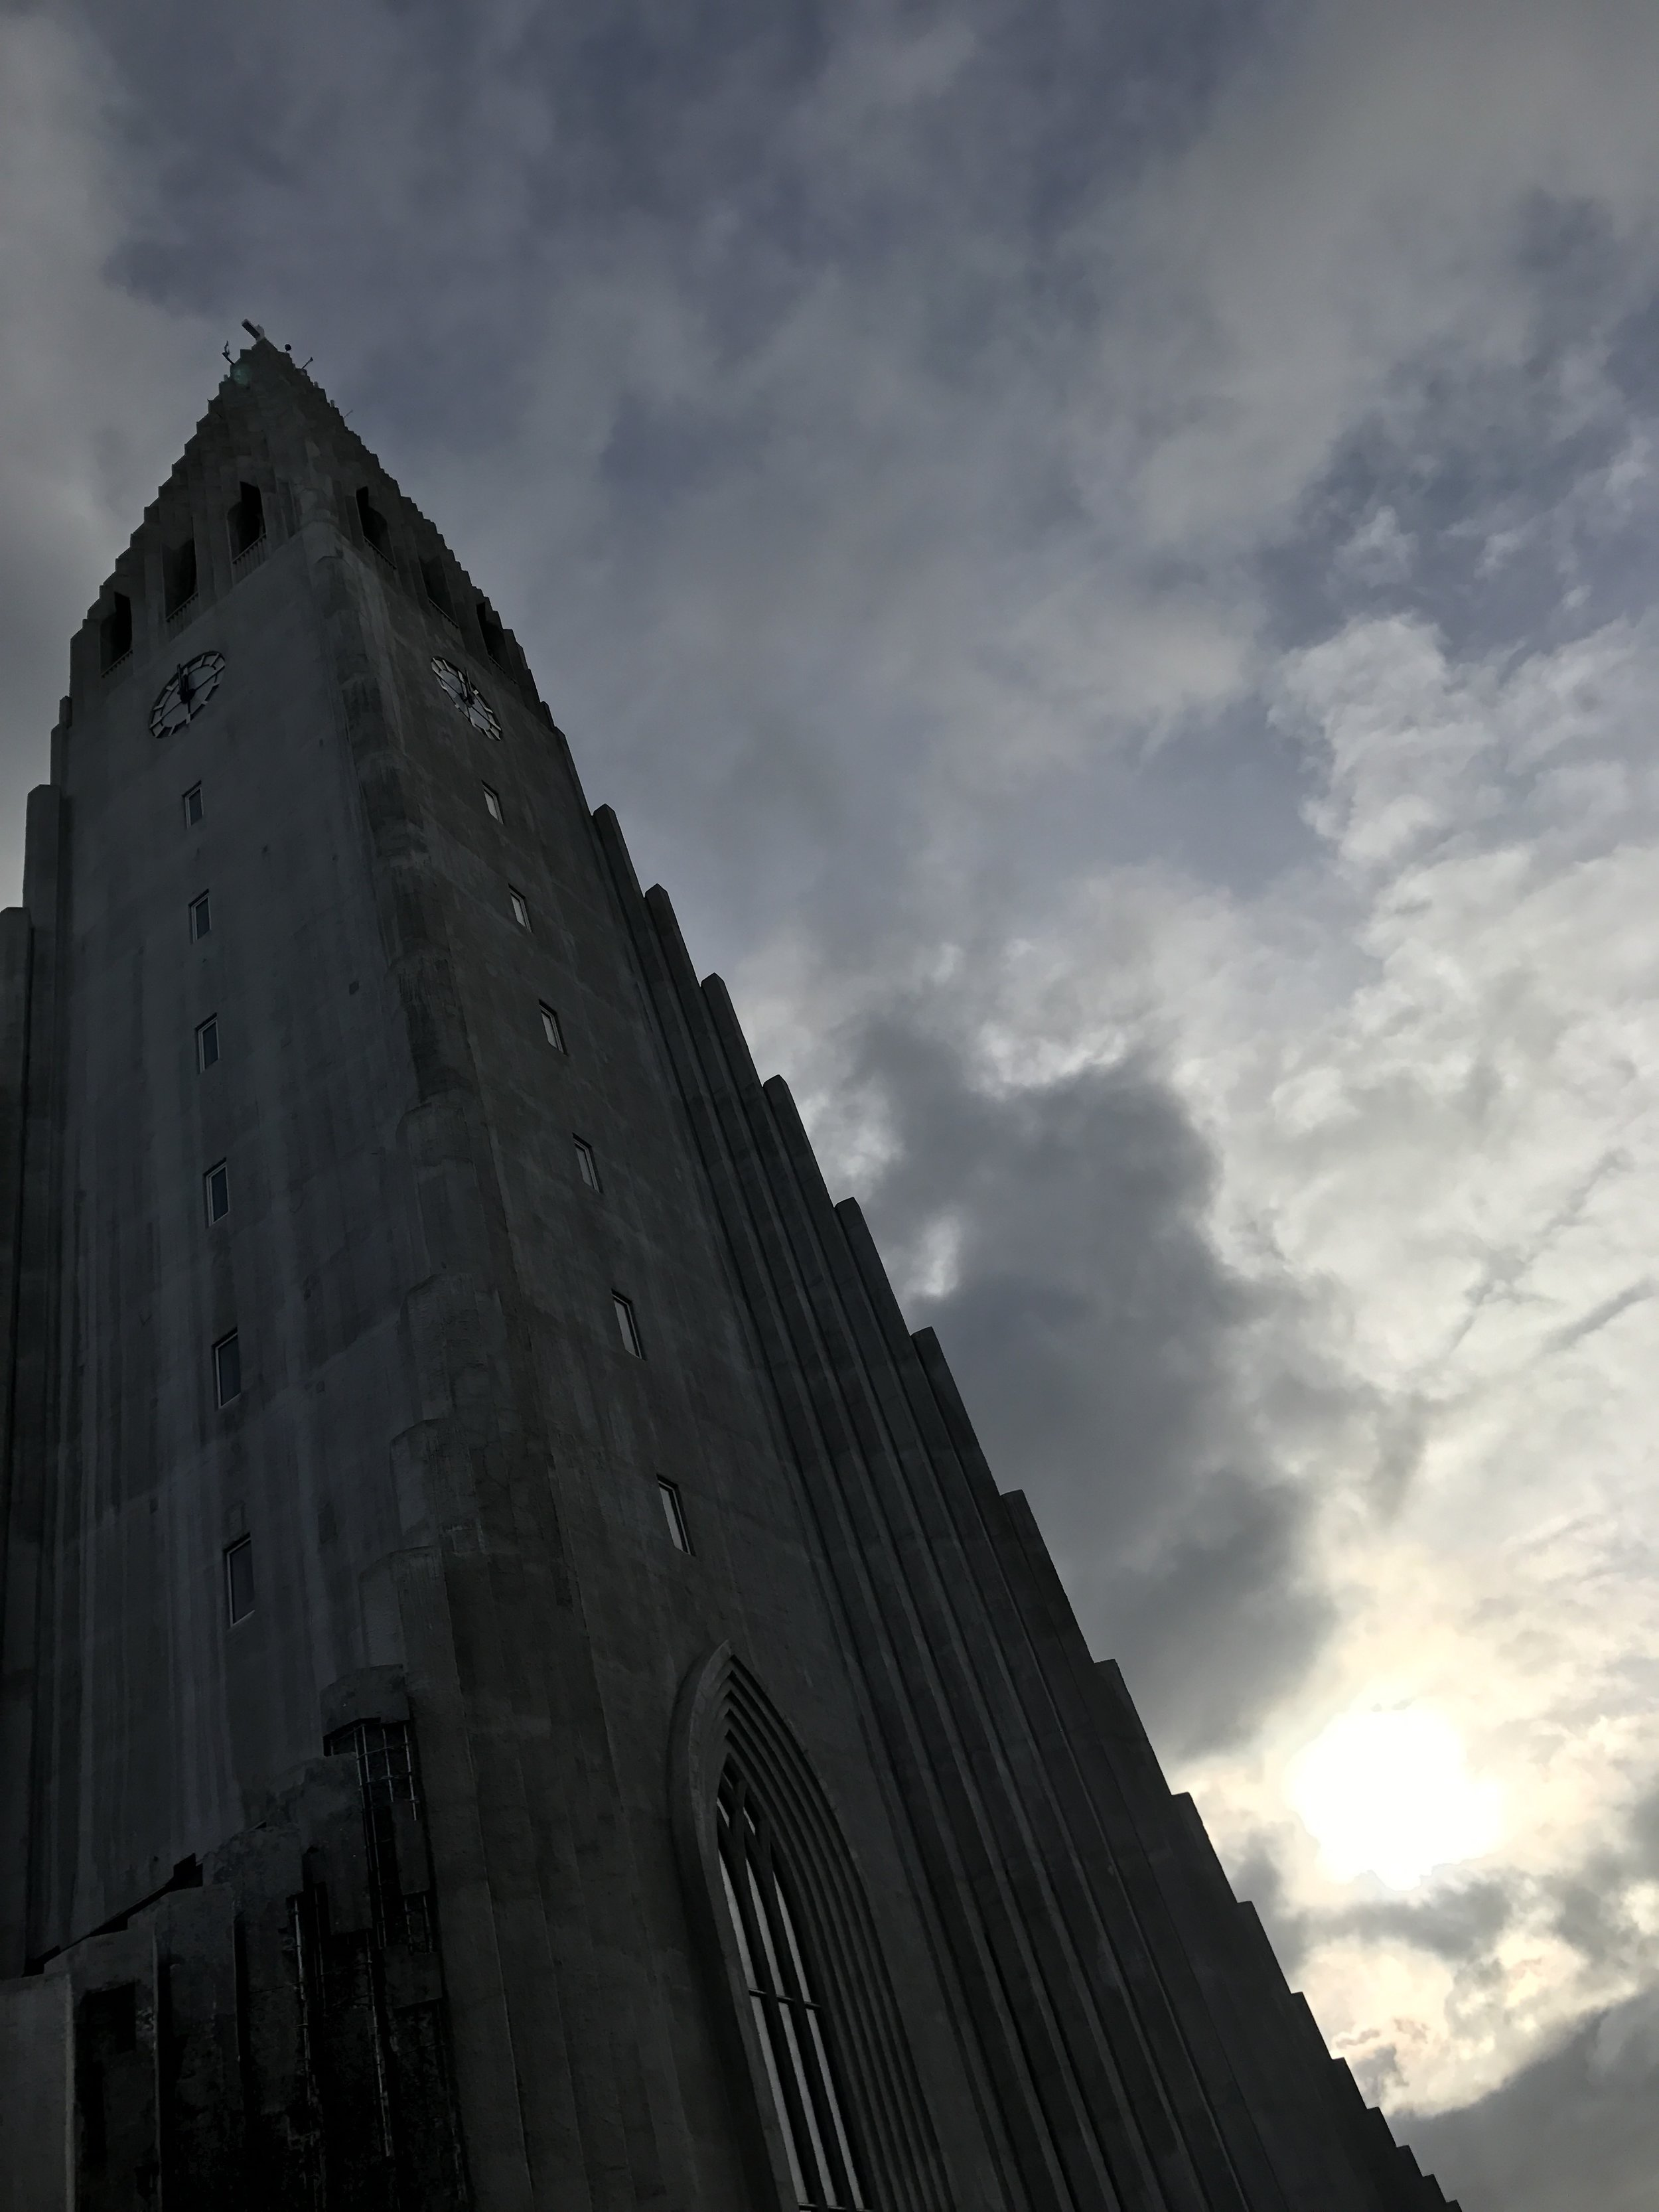 Hallgrímskirkja is one of Iceland's most famous buildings.